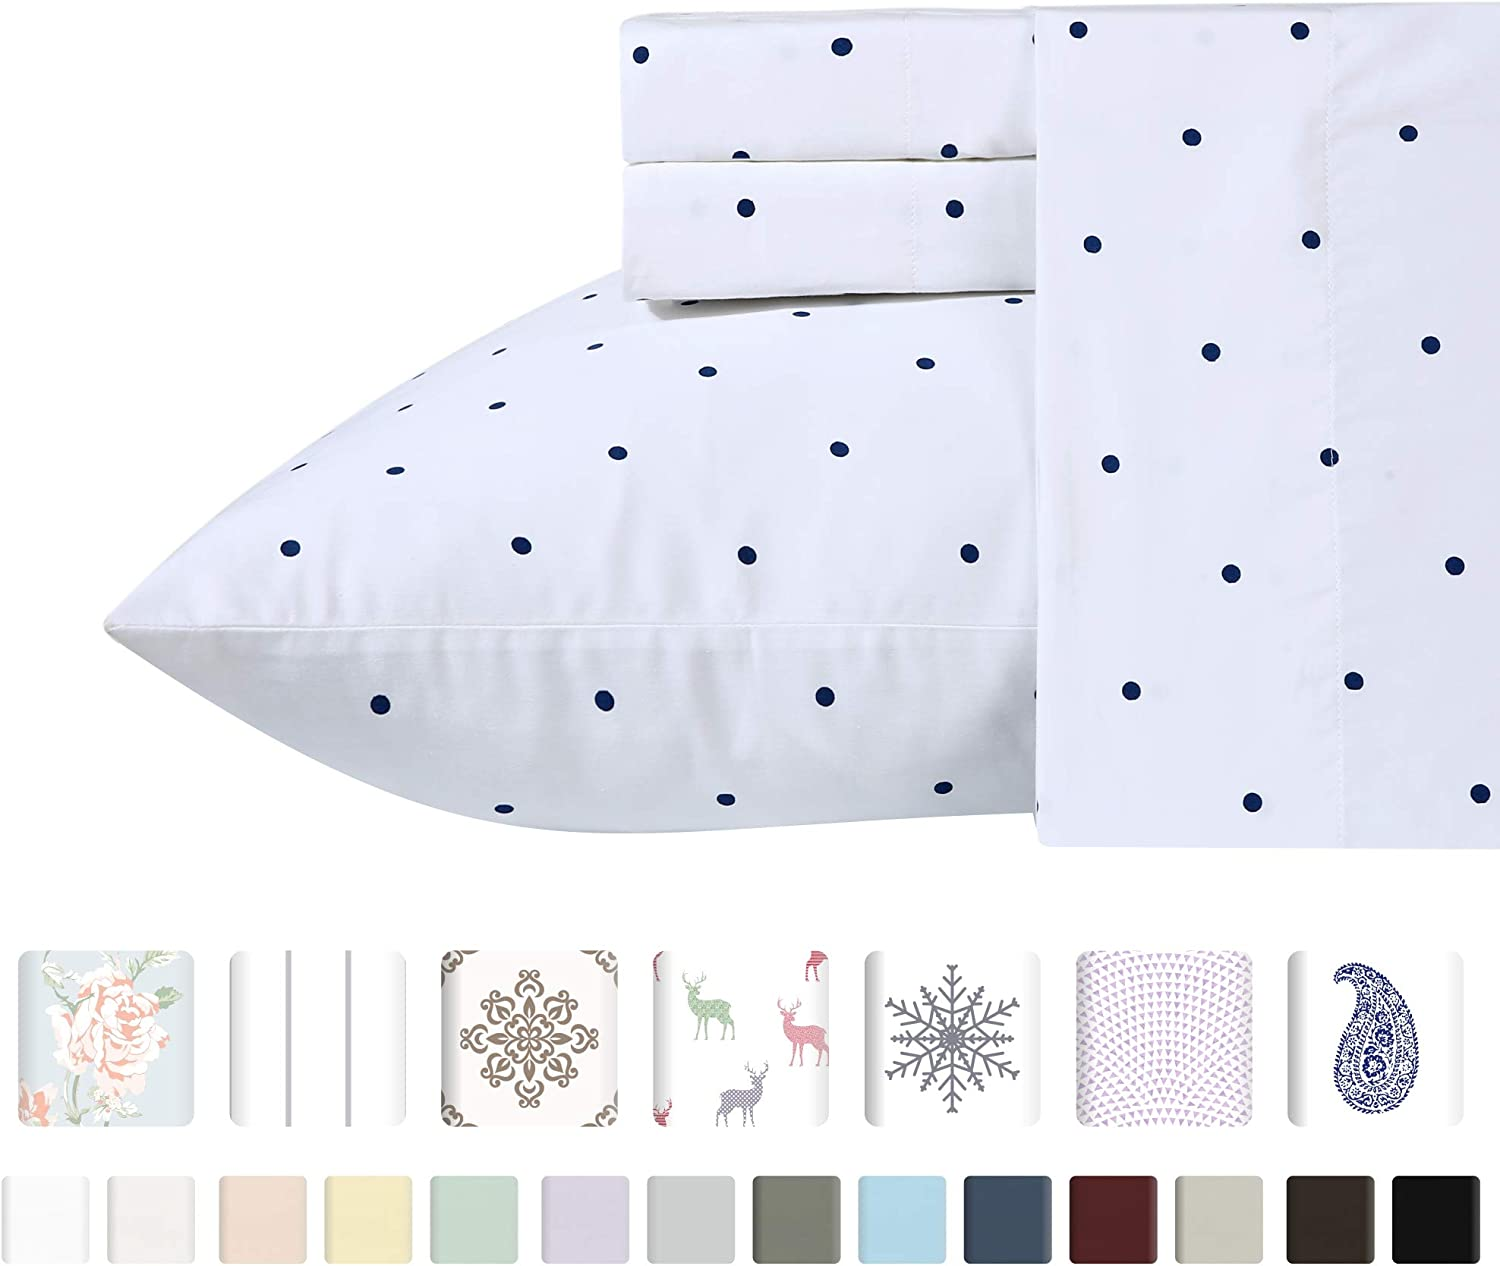 Best Quality 400-Thread-Count 100% Pure Cotton Sheets for Bed - 3 Pc Navy Blue Polka Dot Twin Size Sheet Set, Long-Staple Combed Cotton Printed Flat Top Sheet Sets Fits Mattress Upto 17'' Deep Pocket